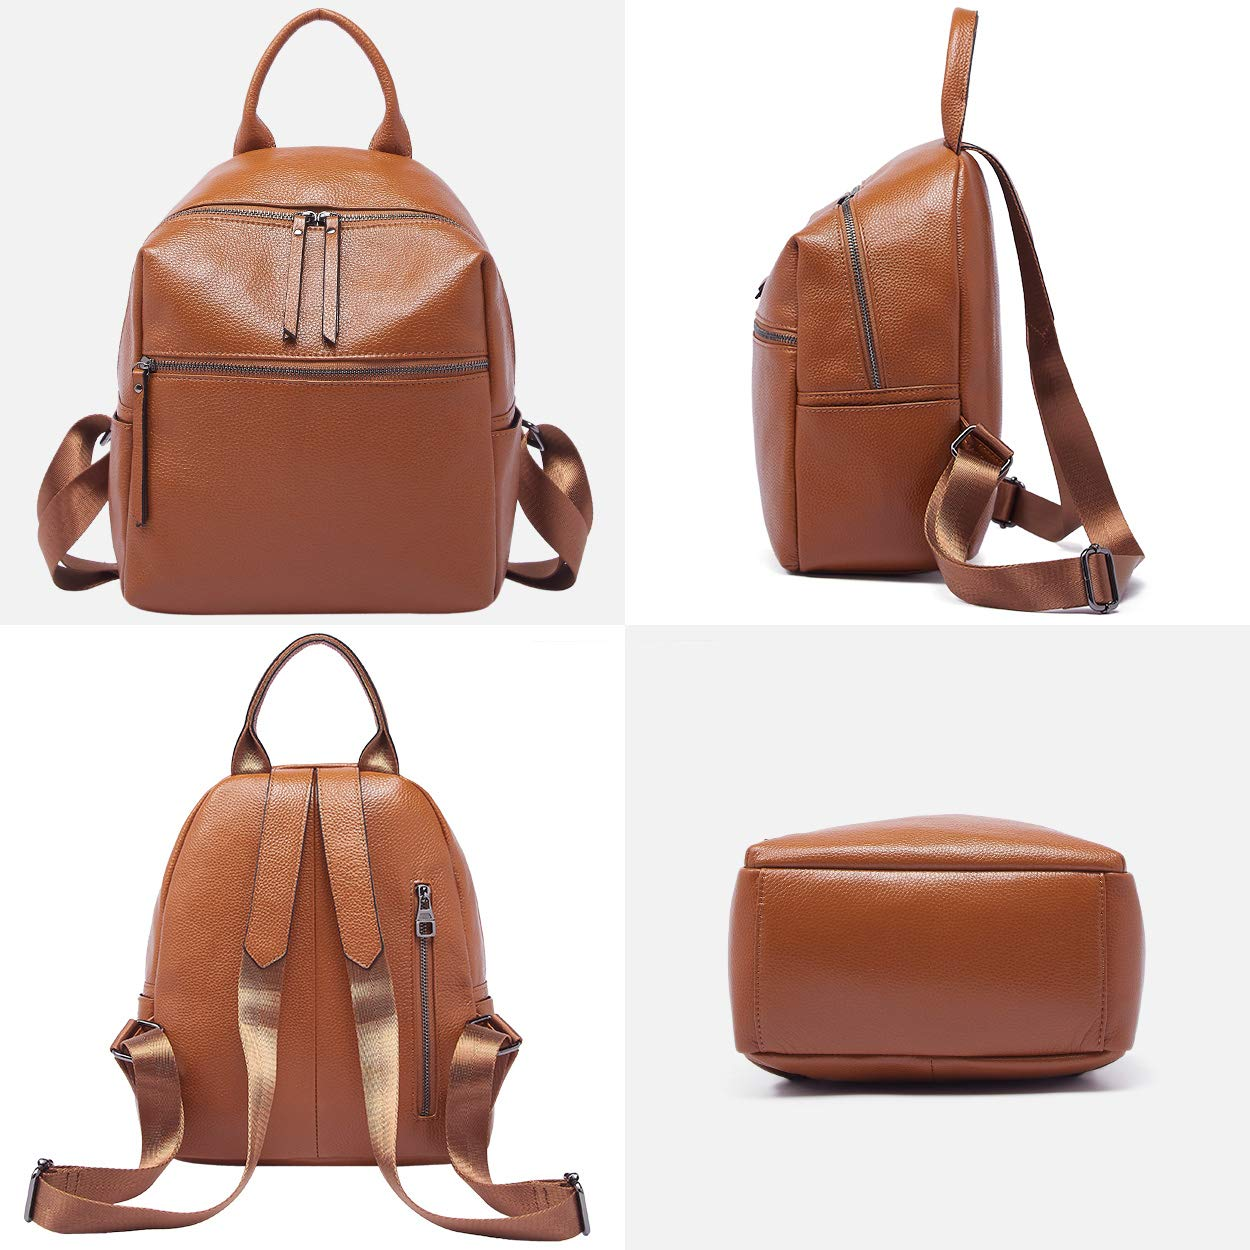 BOYATU Genuine Leather Backpack Purse for Women Anti-theft Small Shoulder Bags by BOYATU (Image #2)